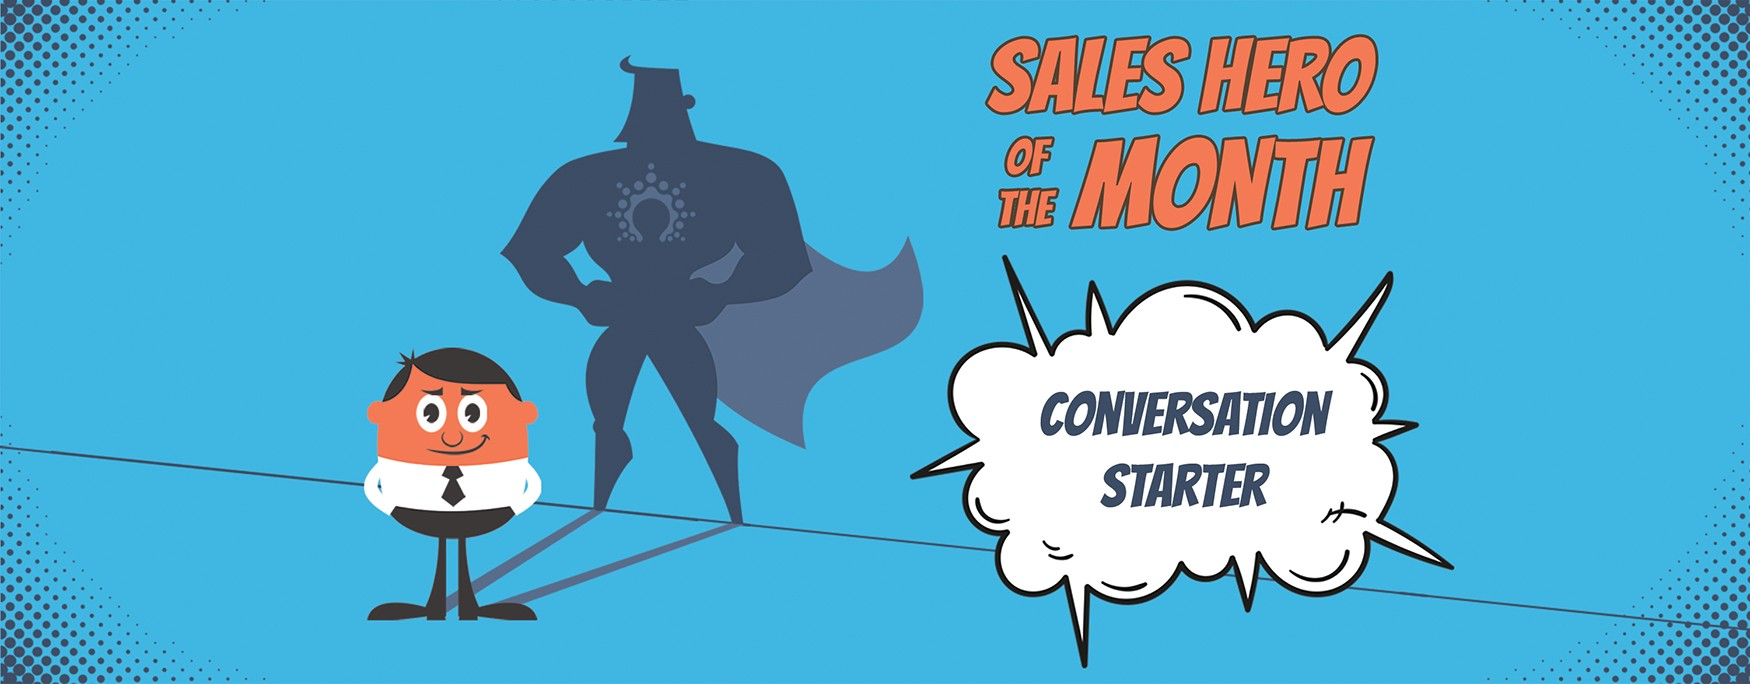 Sales hero of the month - Conversation Starter